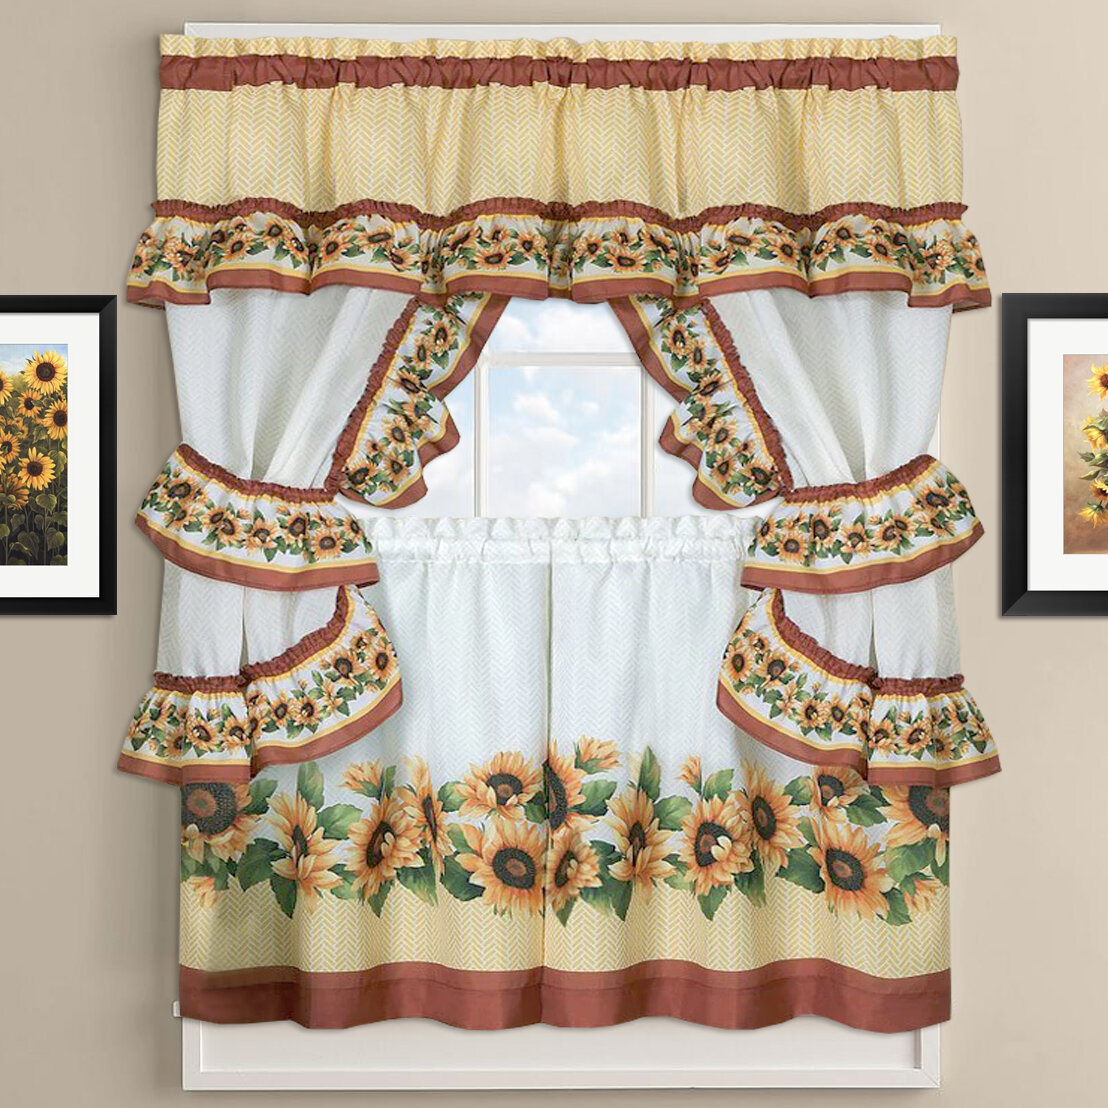 Cottage Kitchen Curtains – Skushi With Regard To Chateau Wines Cottage Kitchen Curtain Tier And Valance Sets (View 8 of 20)